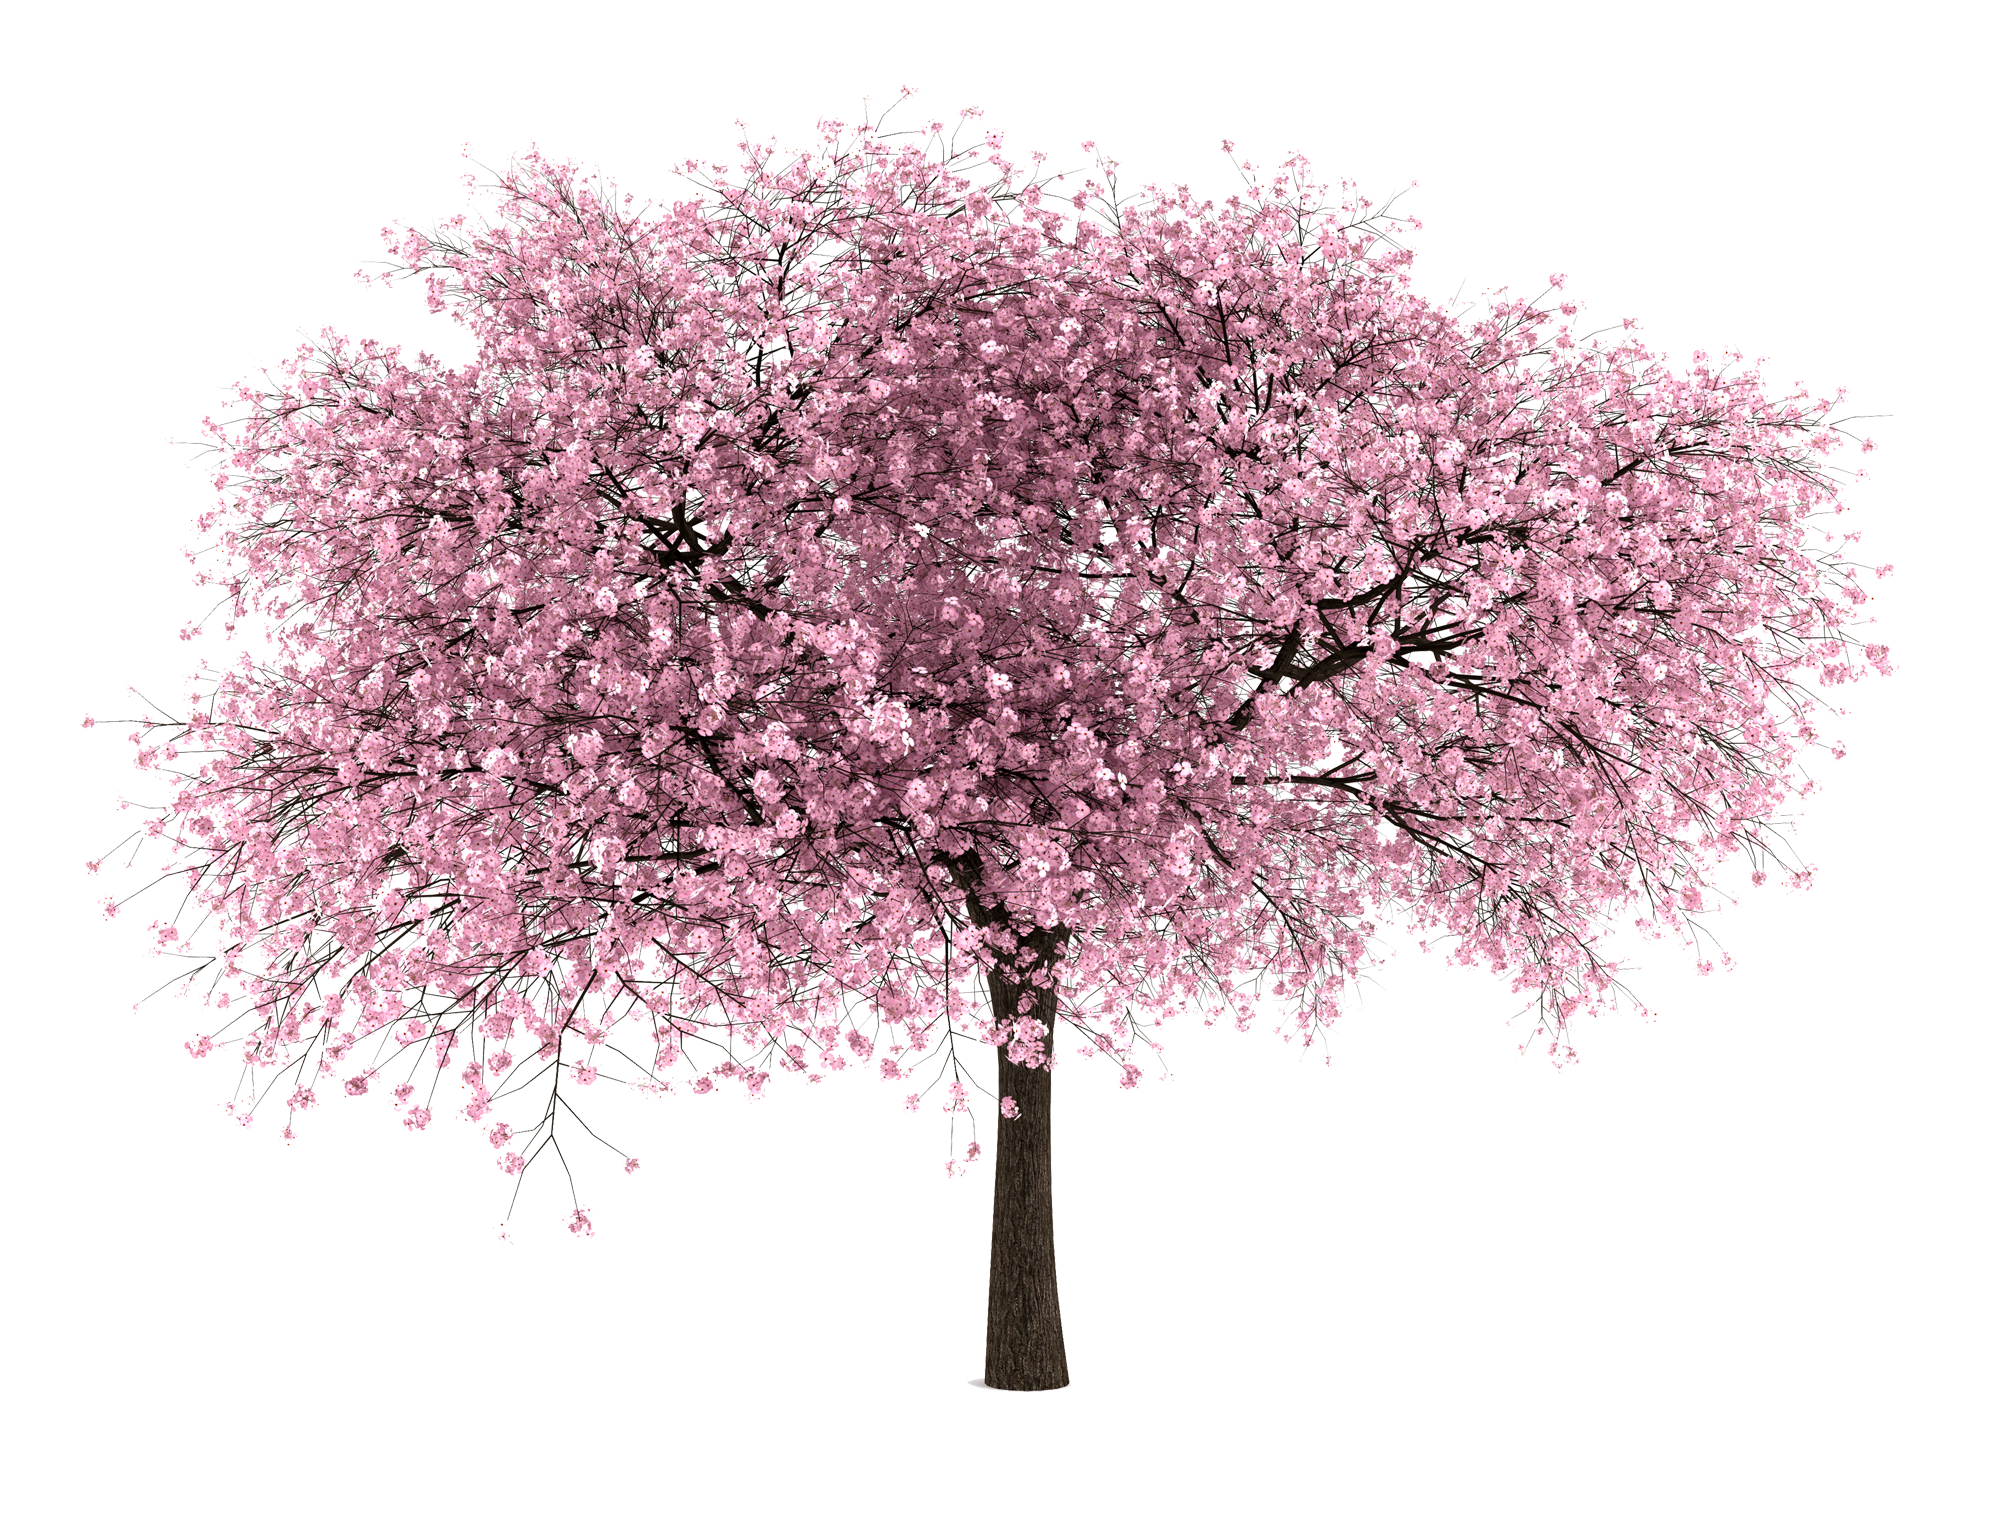 Png Tree With White And Pink Flowers - Spring tree image download transparent - RR collections